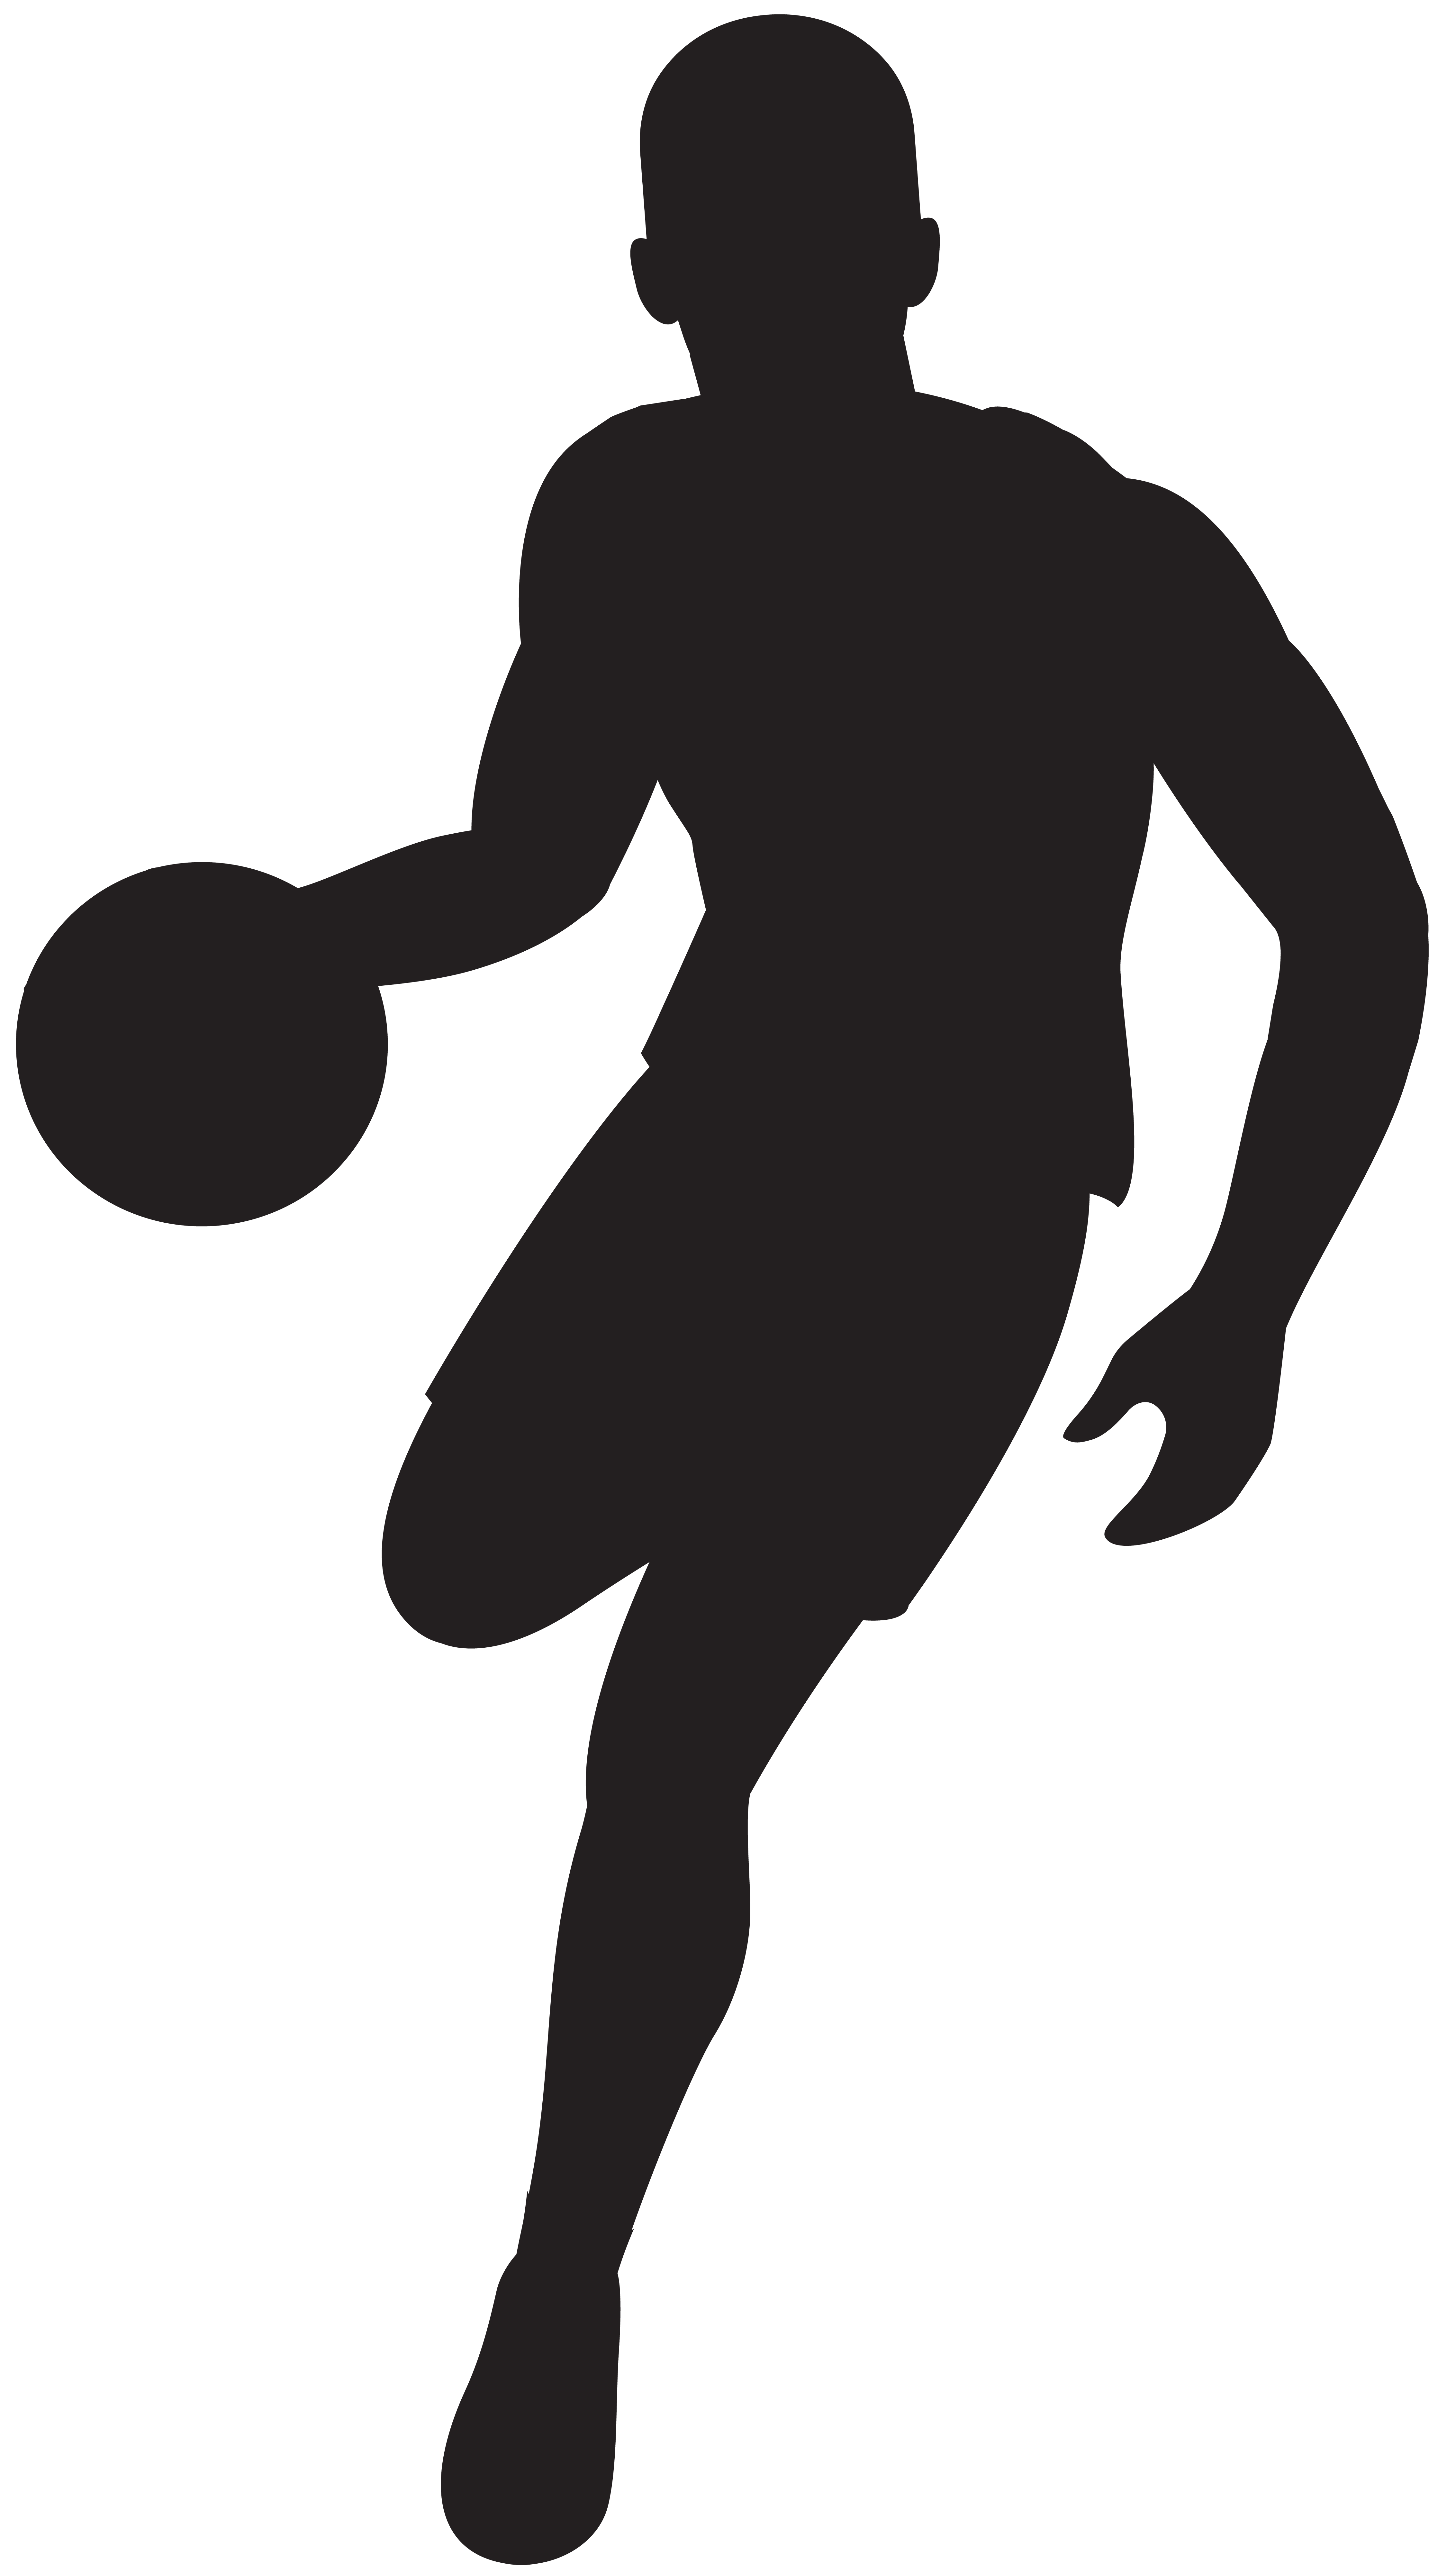 svg download Basketball player clip art. Muscle clipart silhouette.